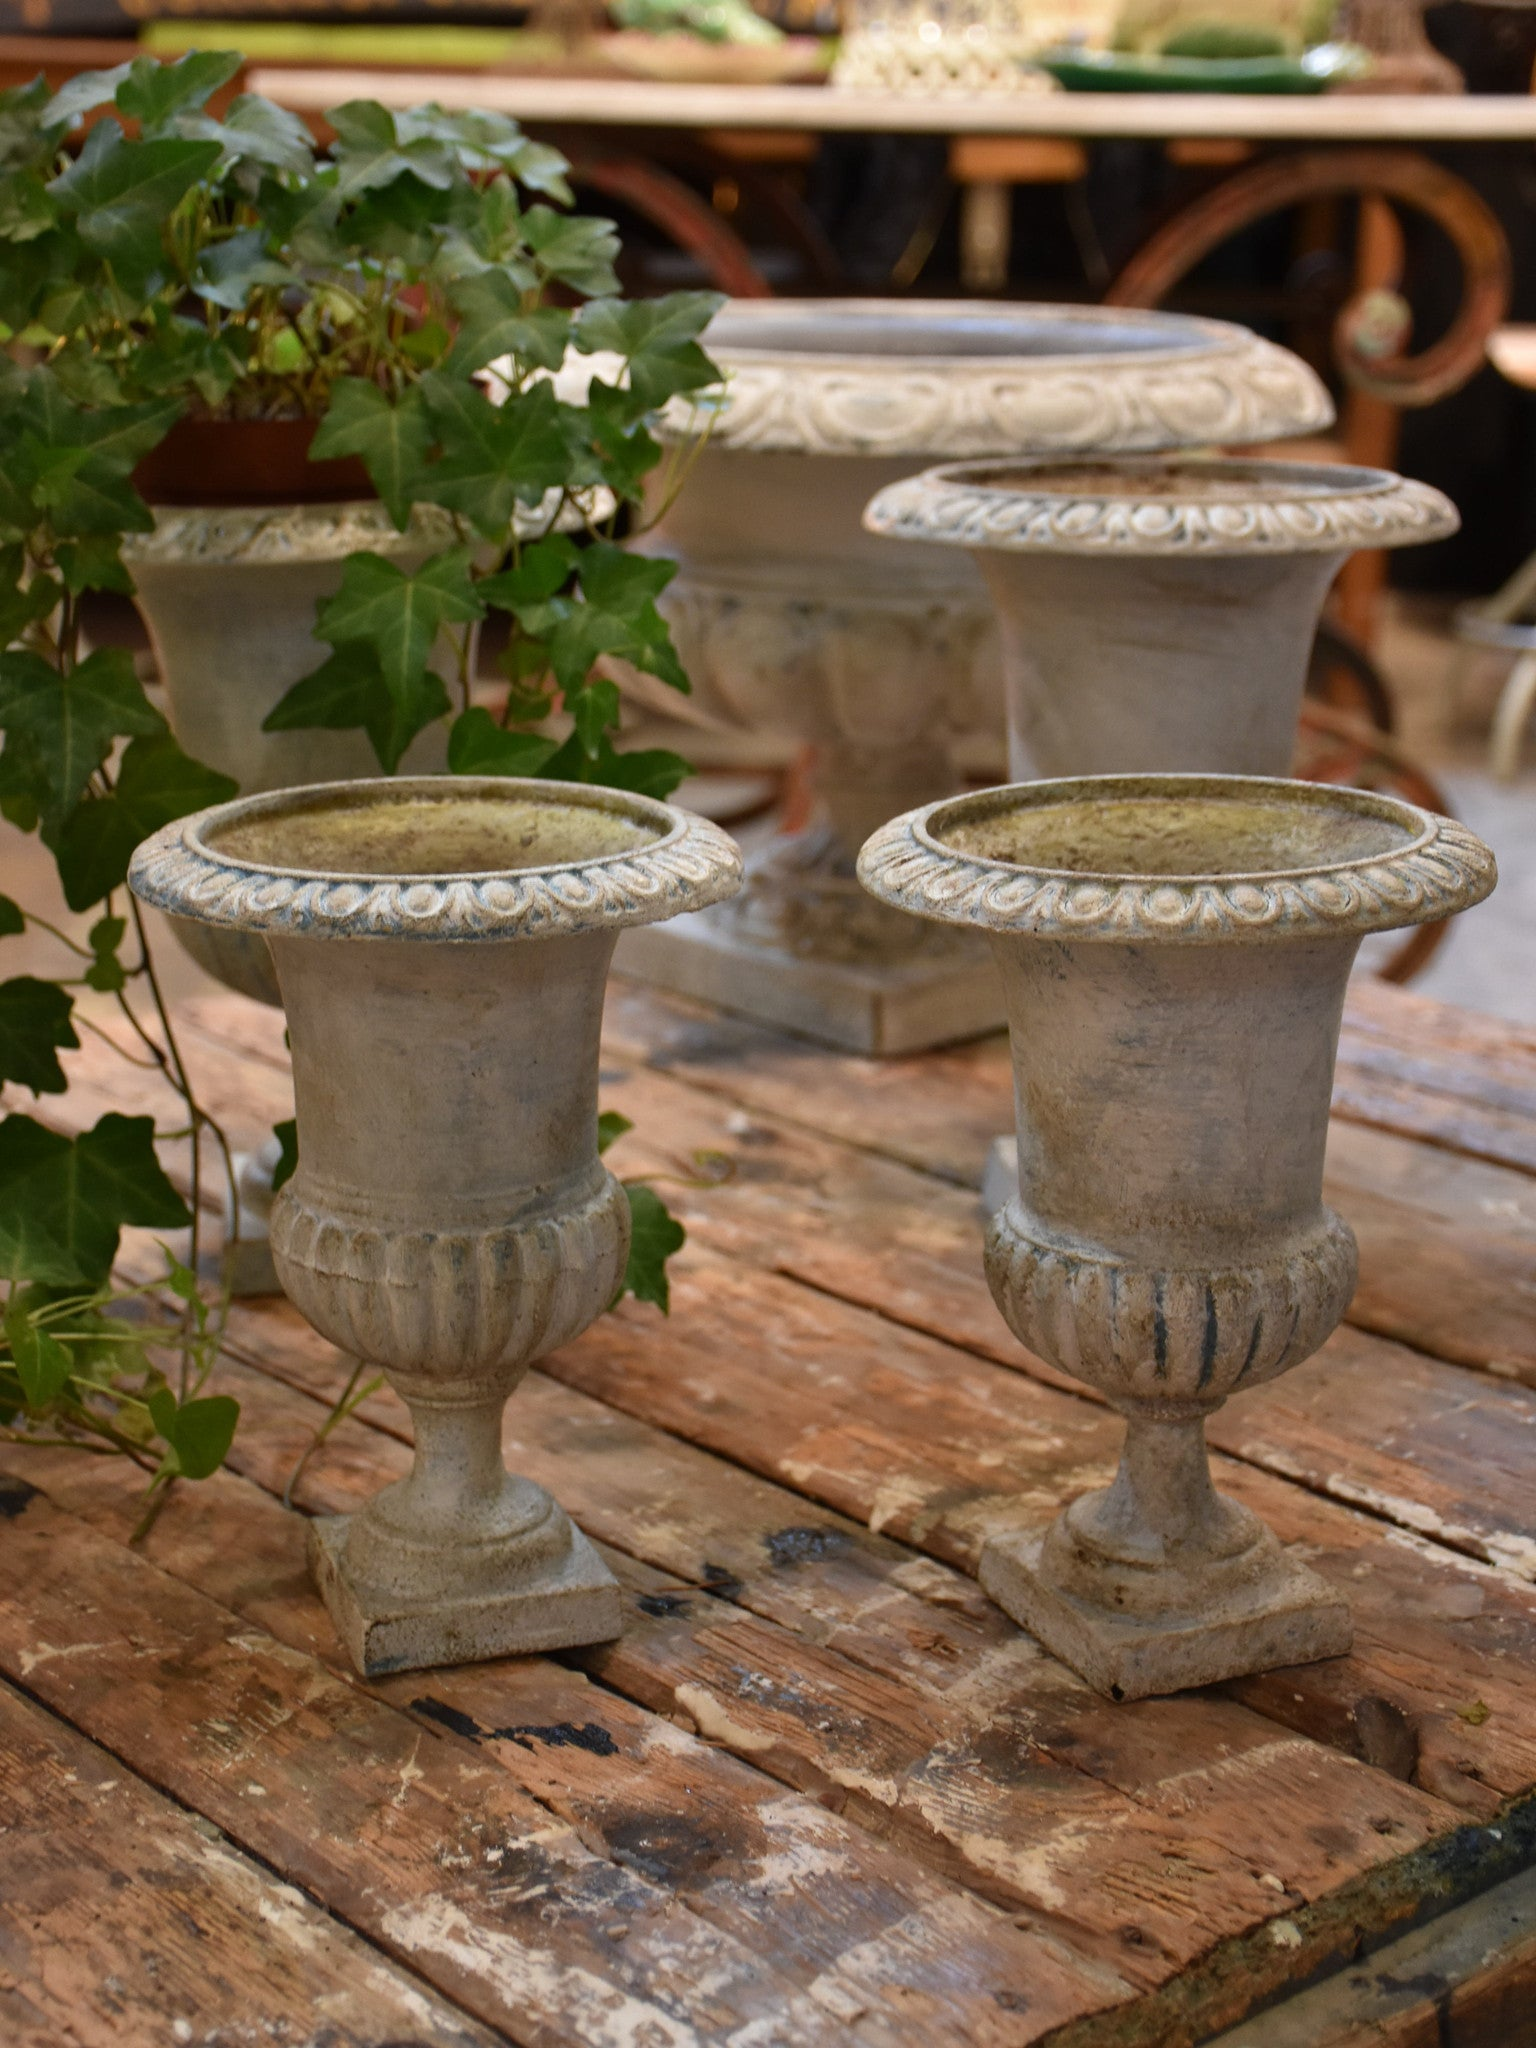 Collection of antique French Medici urns